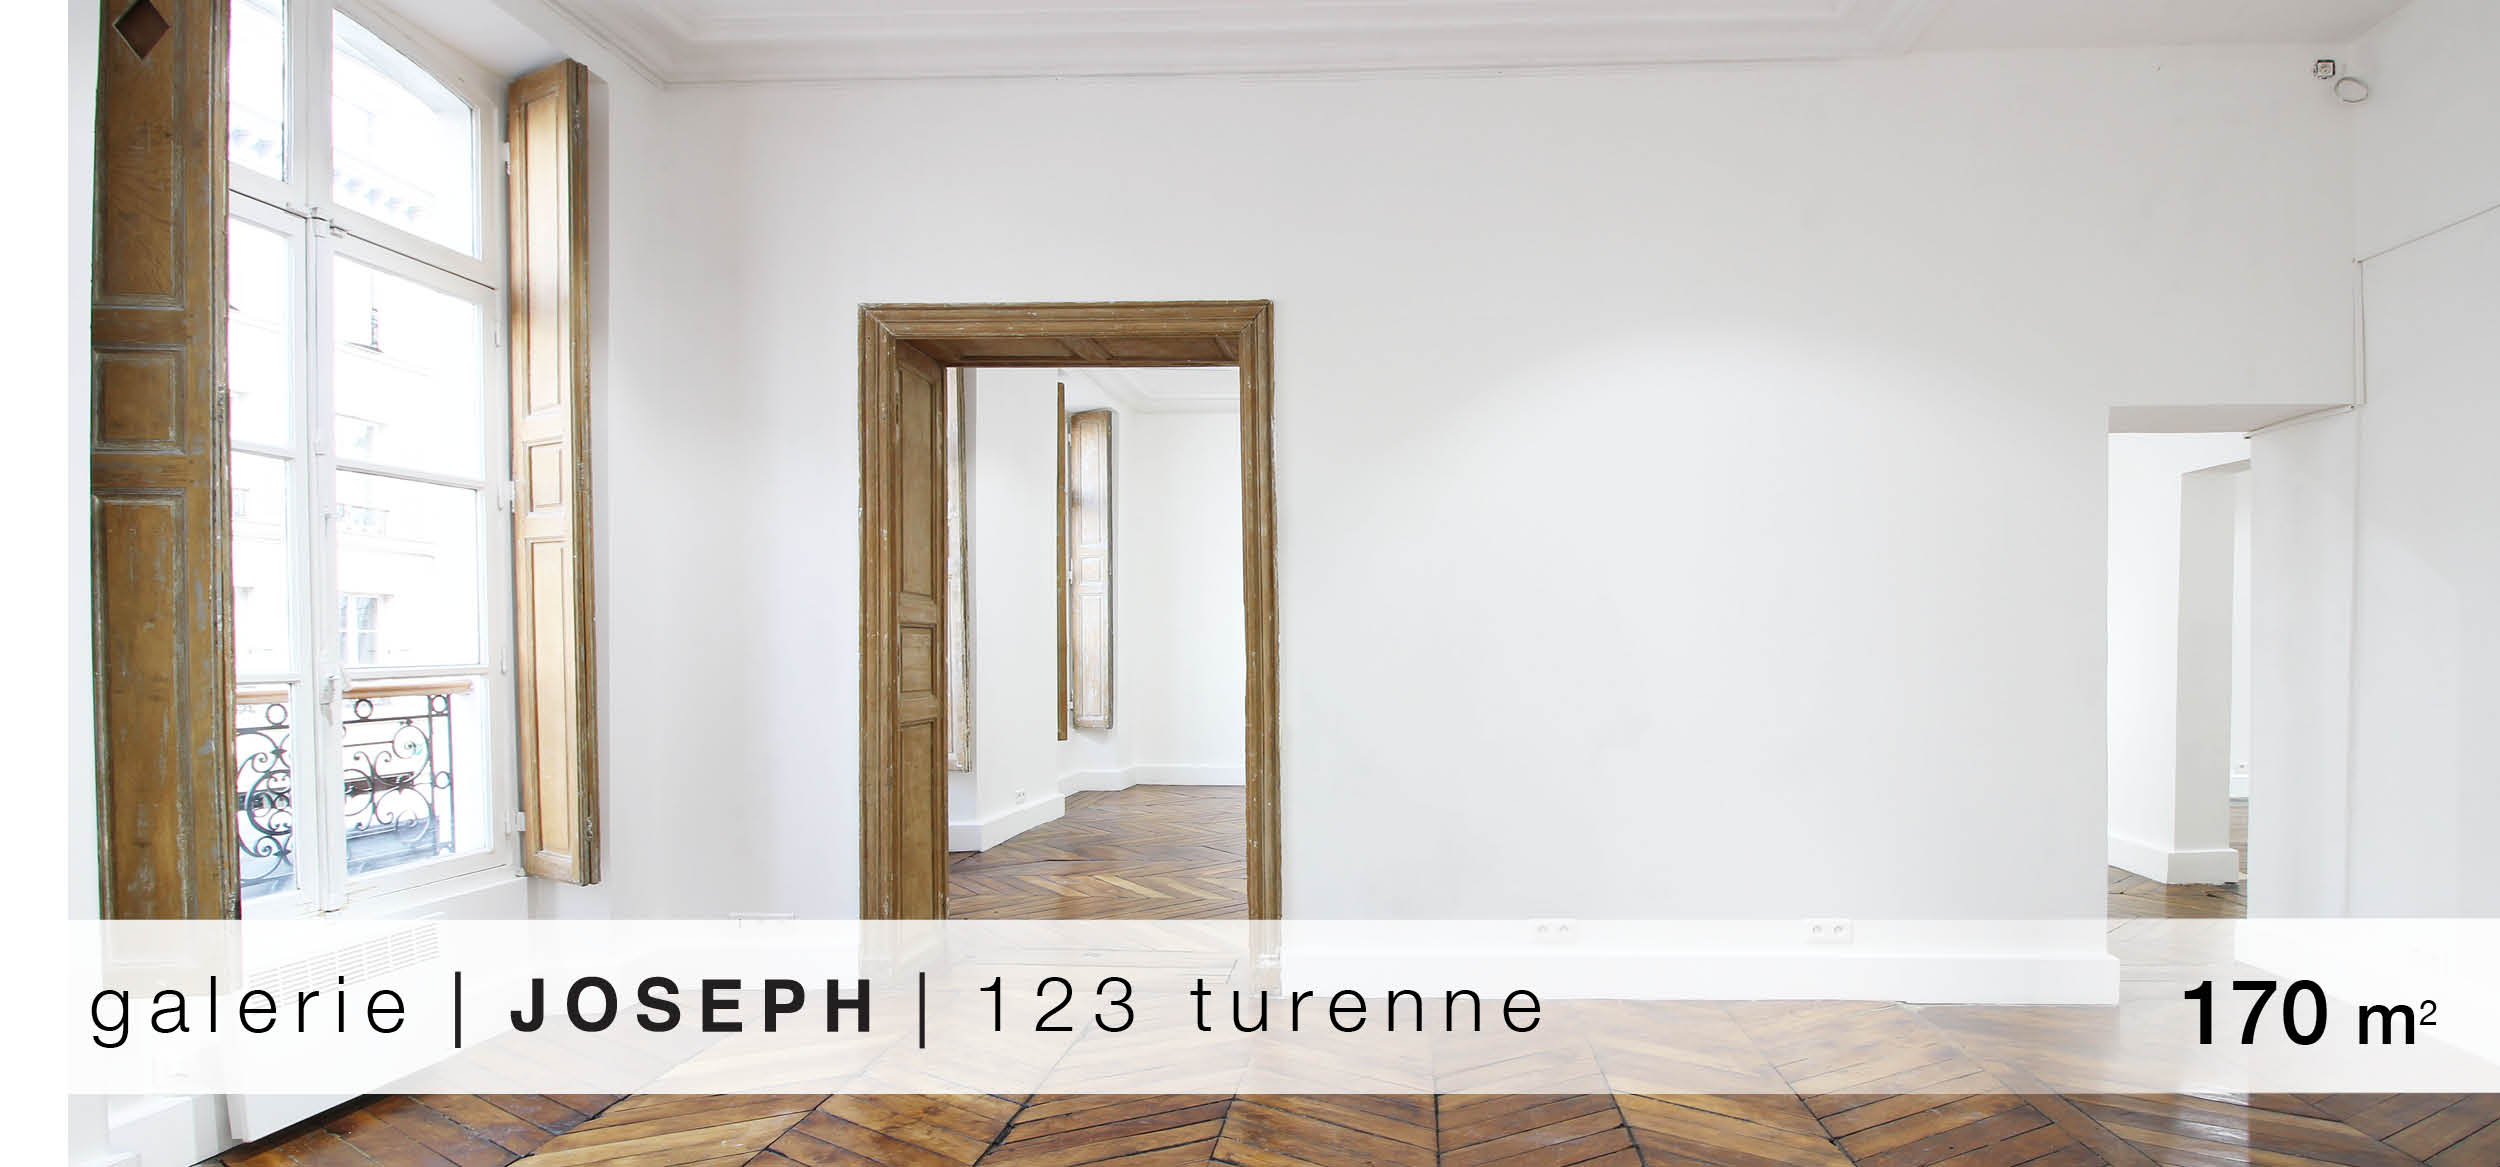 Galerie Joseph 123 Turenne location showroom 123 Turnenne